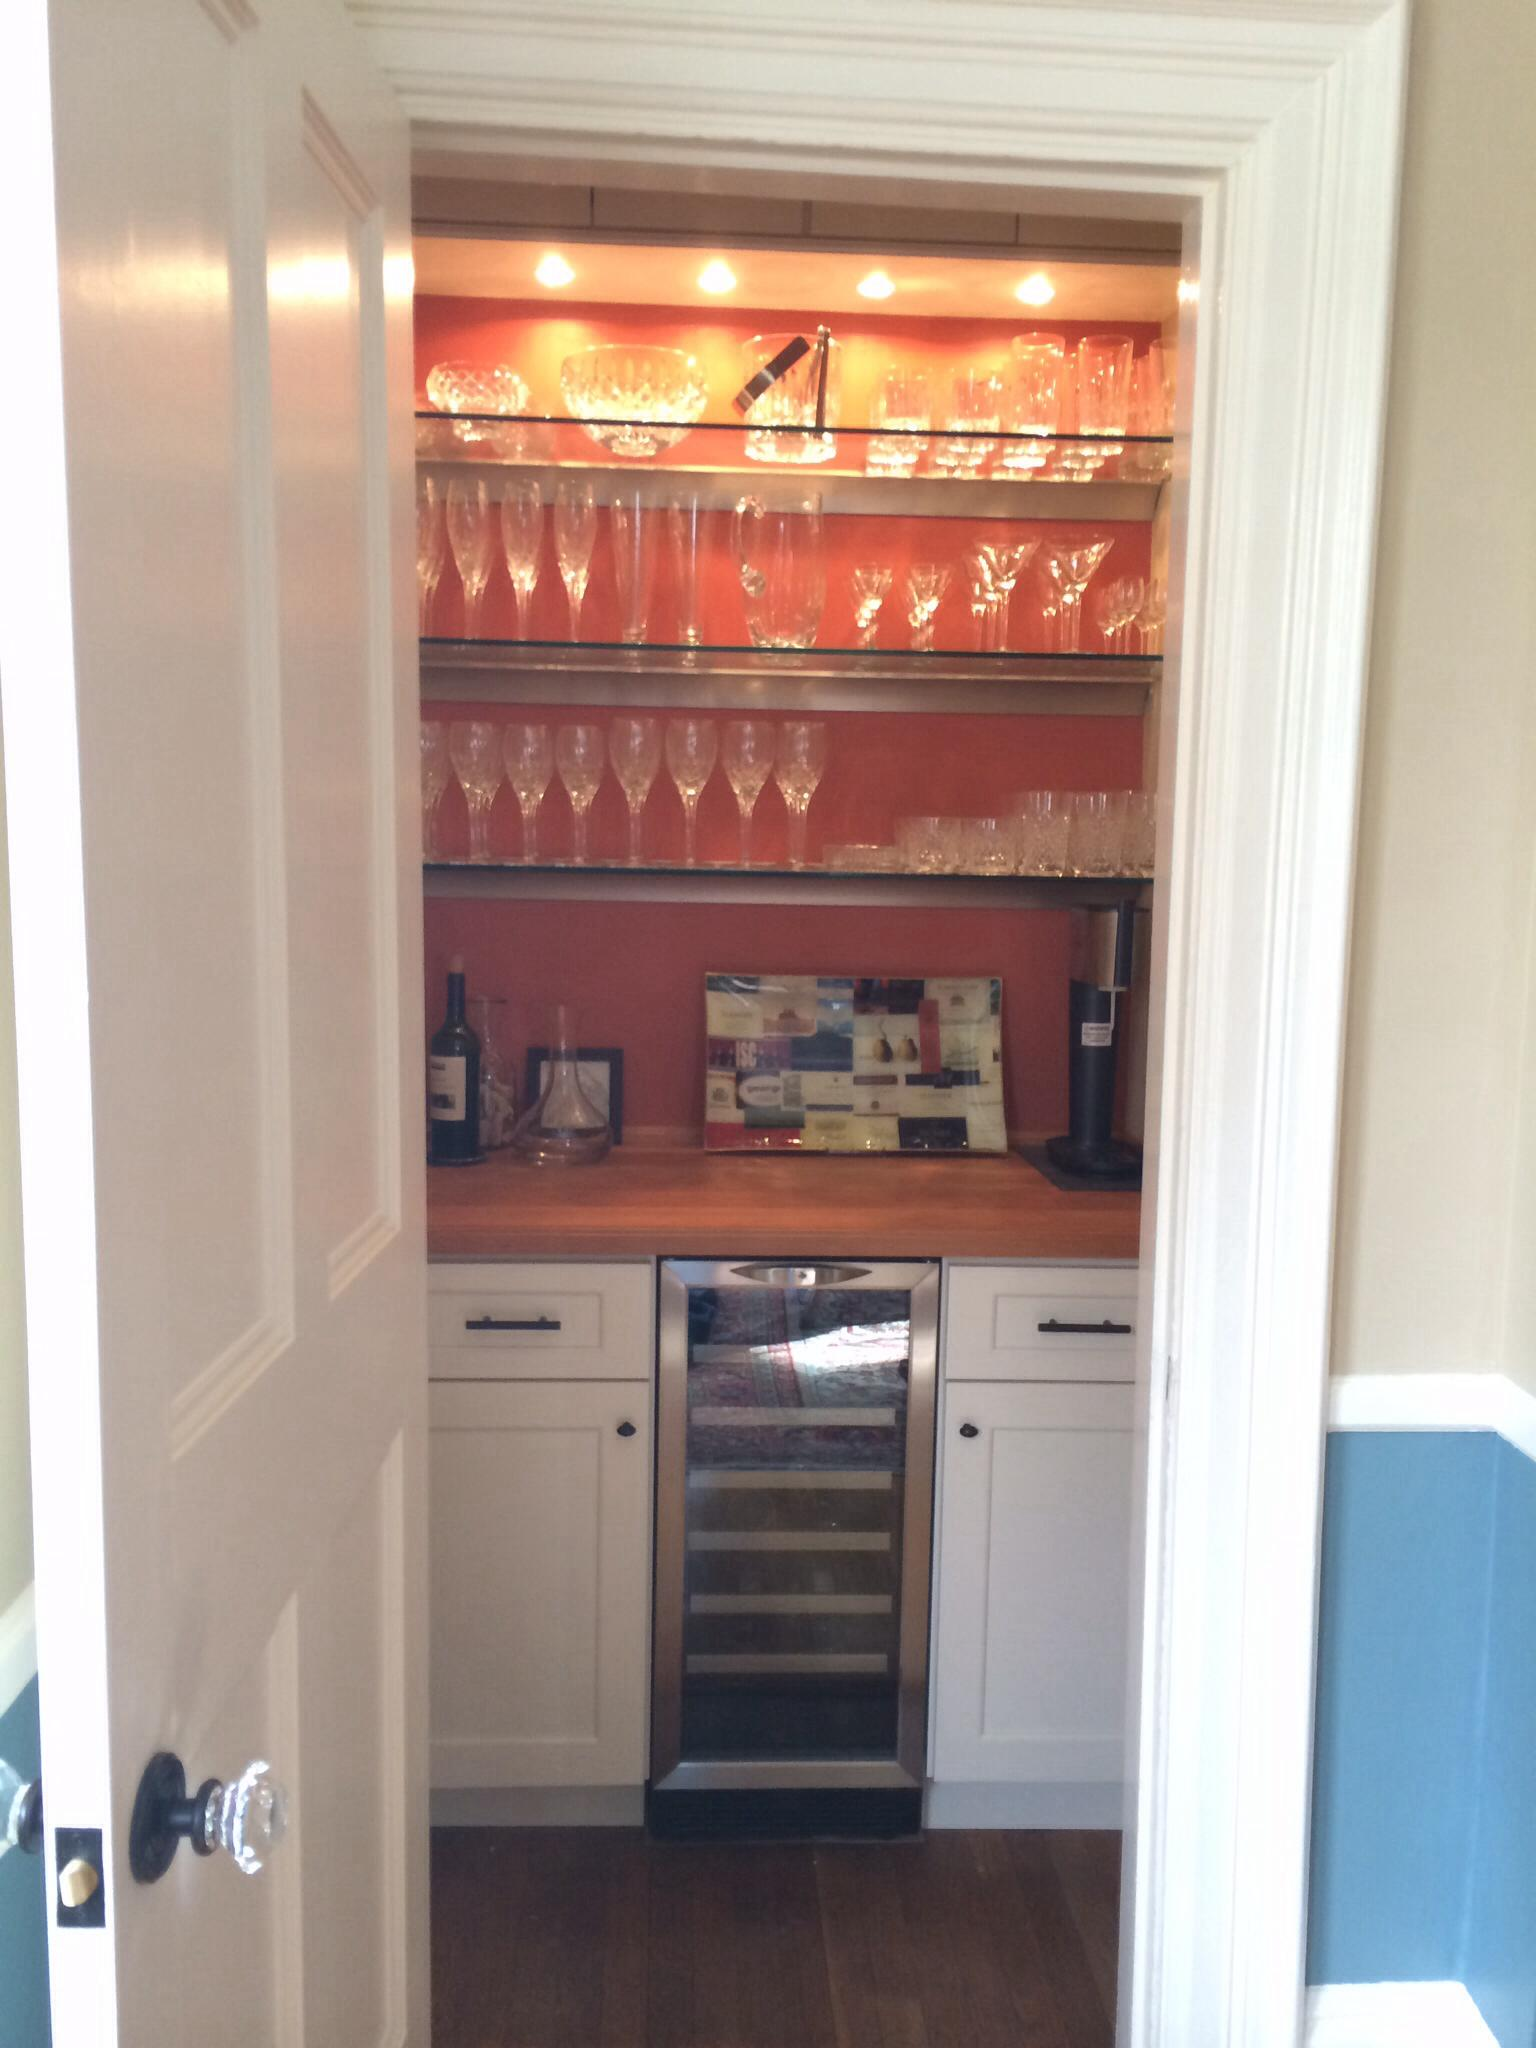 Dining room closet converted to dry bar